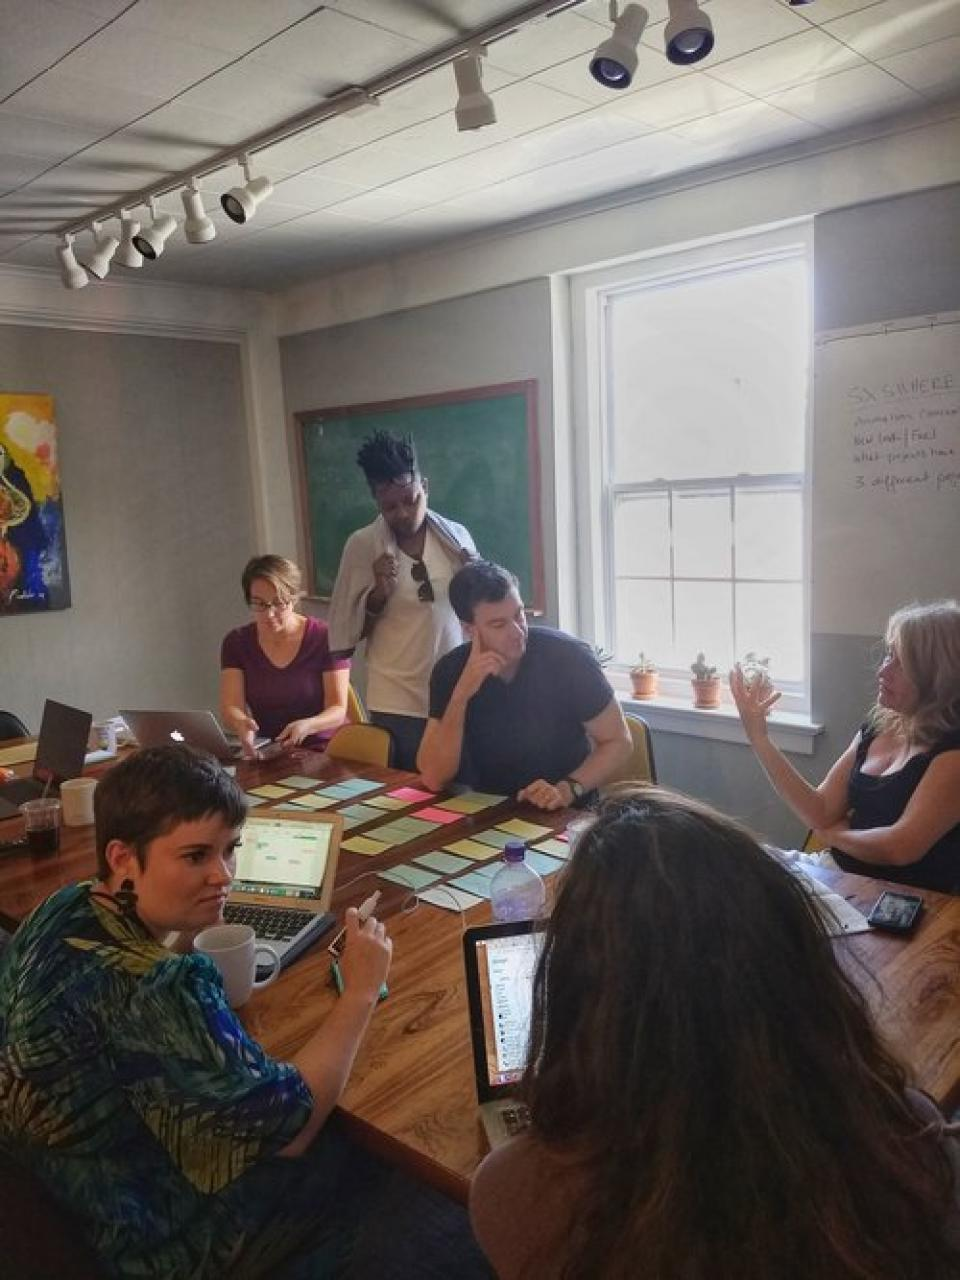 Photo of six people gathered around a work station with computers and note cards.